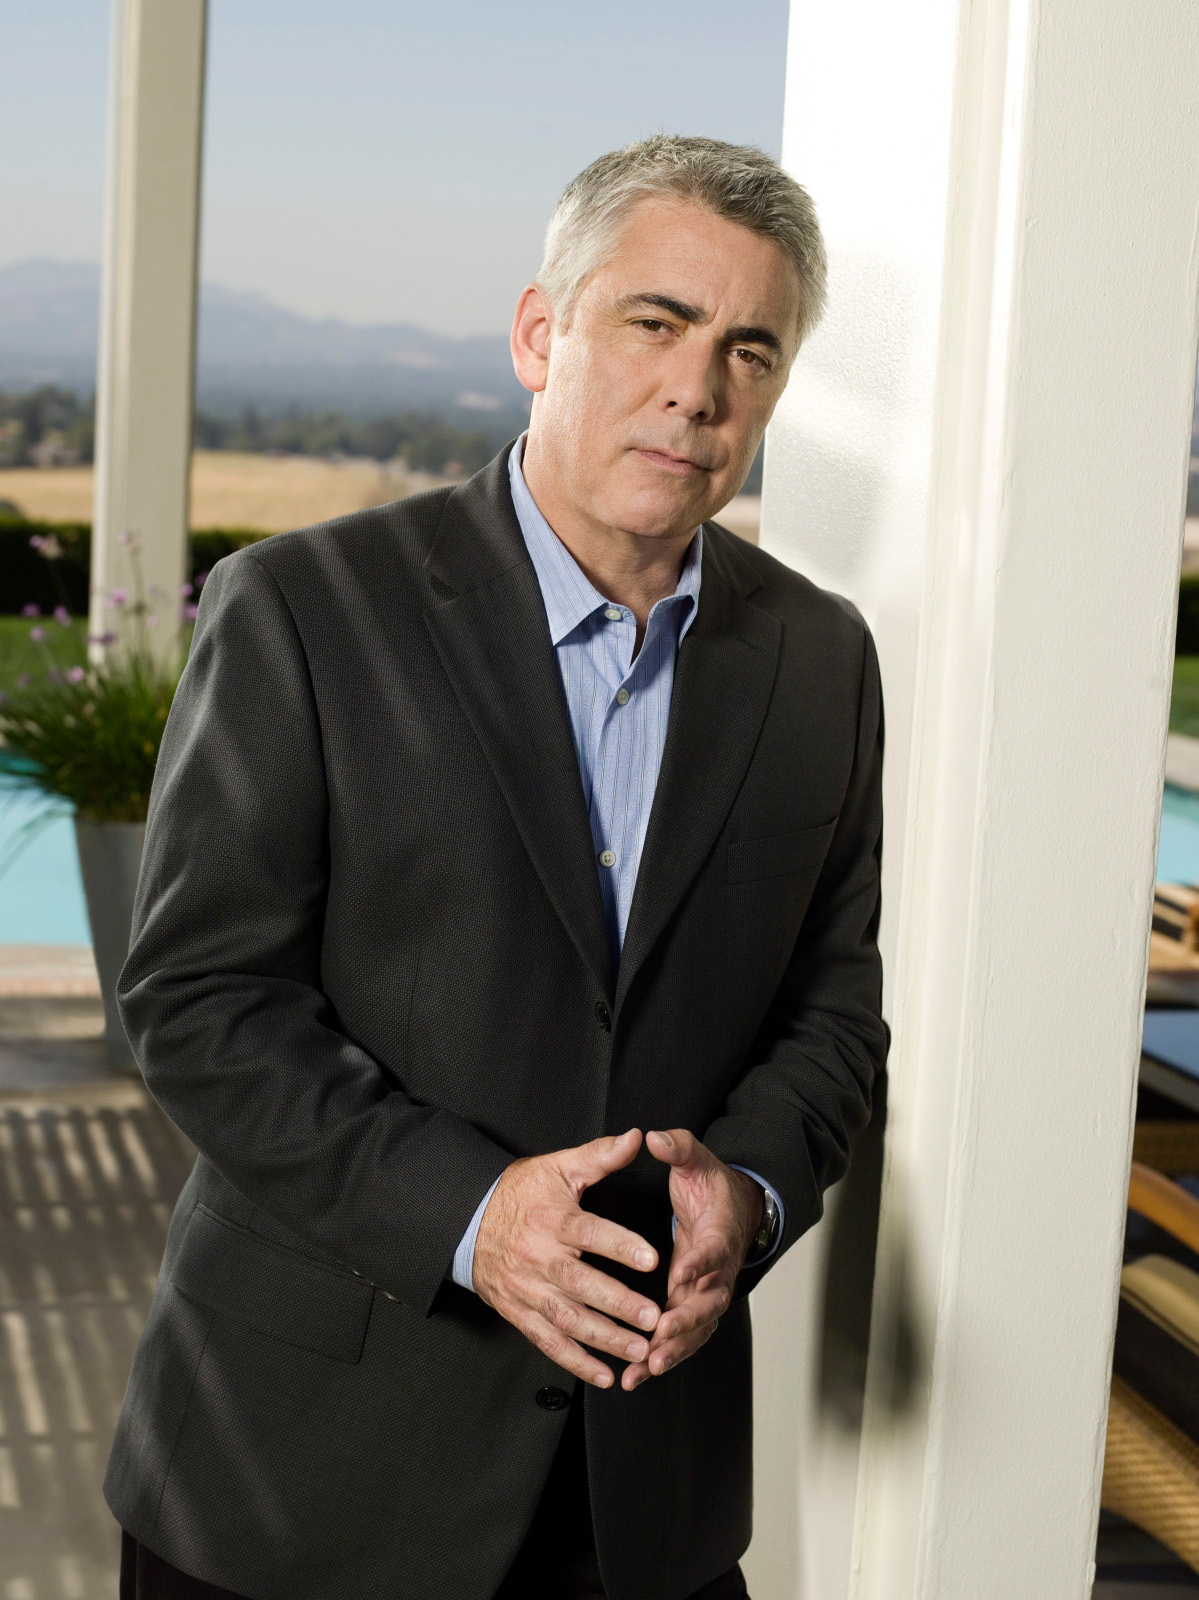 adam arkin net worthadam arkin lab, adam arkin george clooney, adam arkin imdb, adam arkin, adam arkin fargo, adam arkin sons of anarchy, adam arkin berkeley, adam arkin wiki, адам аркин, adam arkin actor, adam arkin wikipedia, adam arkin director, adam arkin facebook, адам арын ойлайды, adam arkin northern exposure, adam arkin busting loose, adam arkin movies and tv shows, adam arkin net worth, adam arkin szpital dobrej nadziei, adam arkin west wing